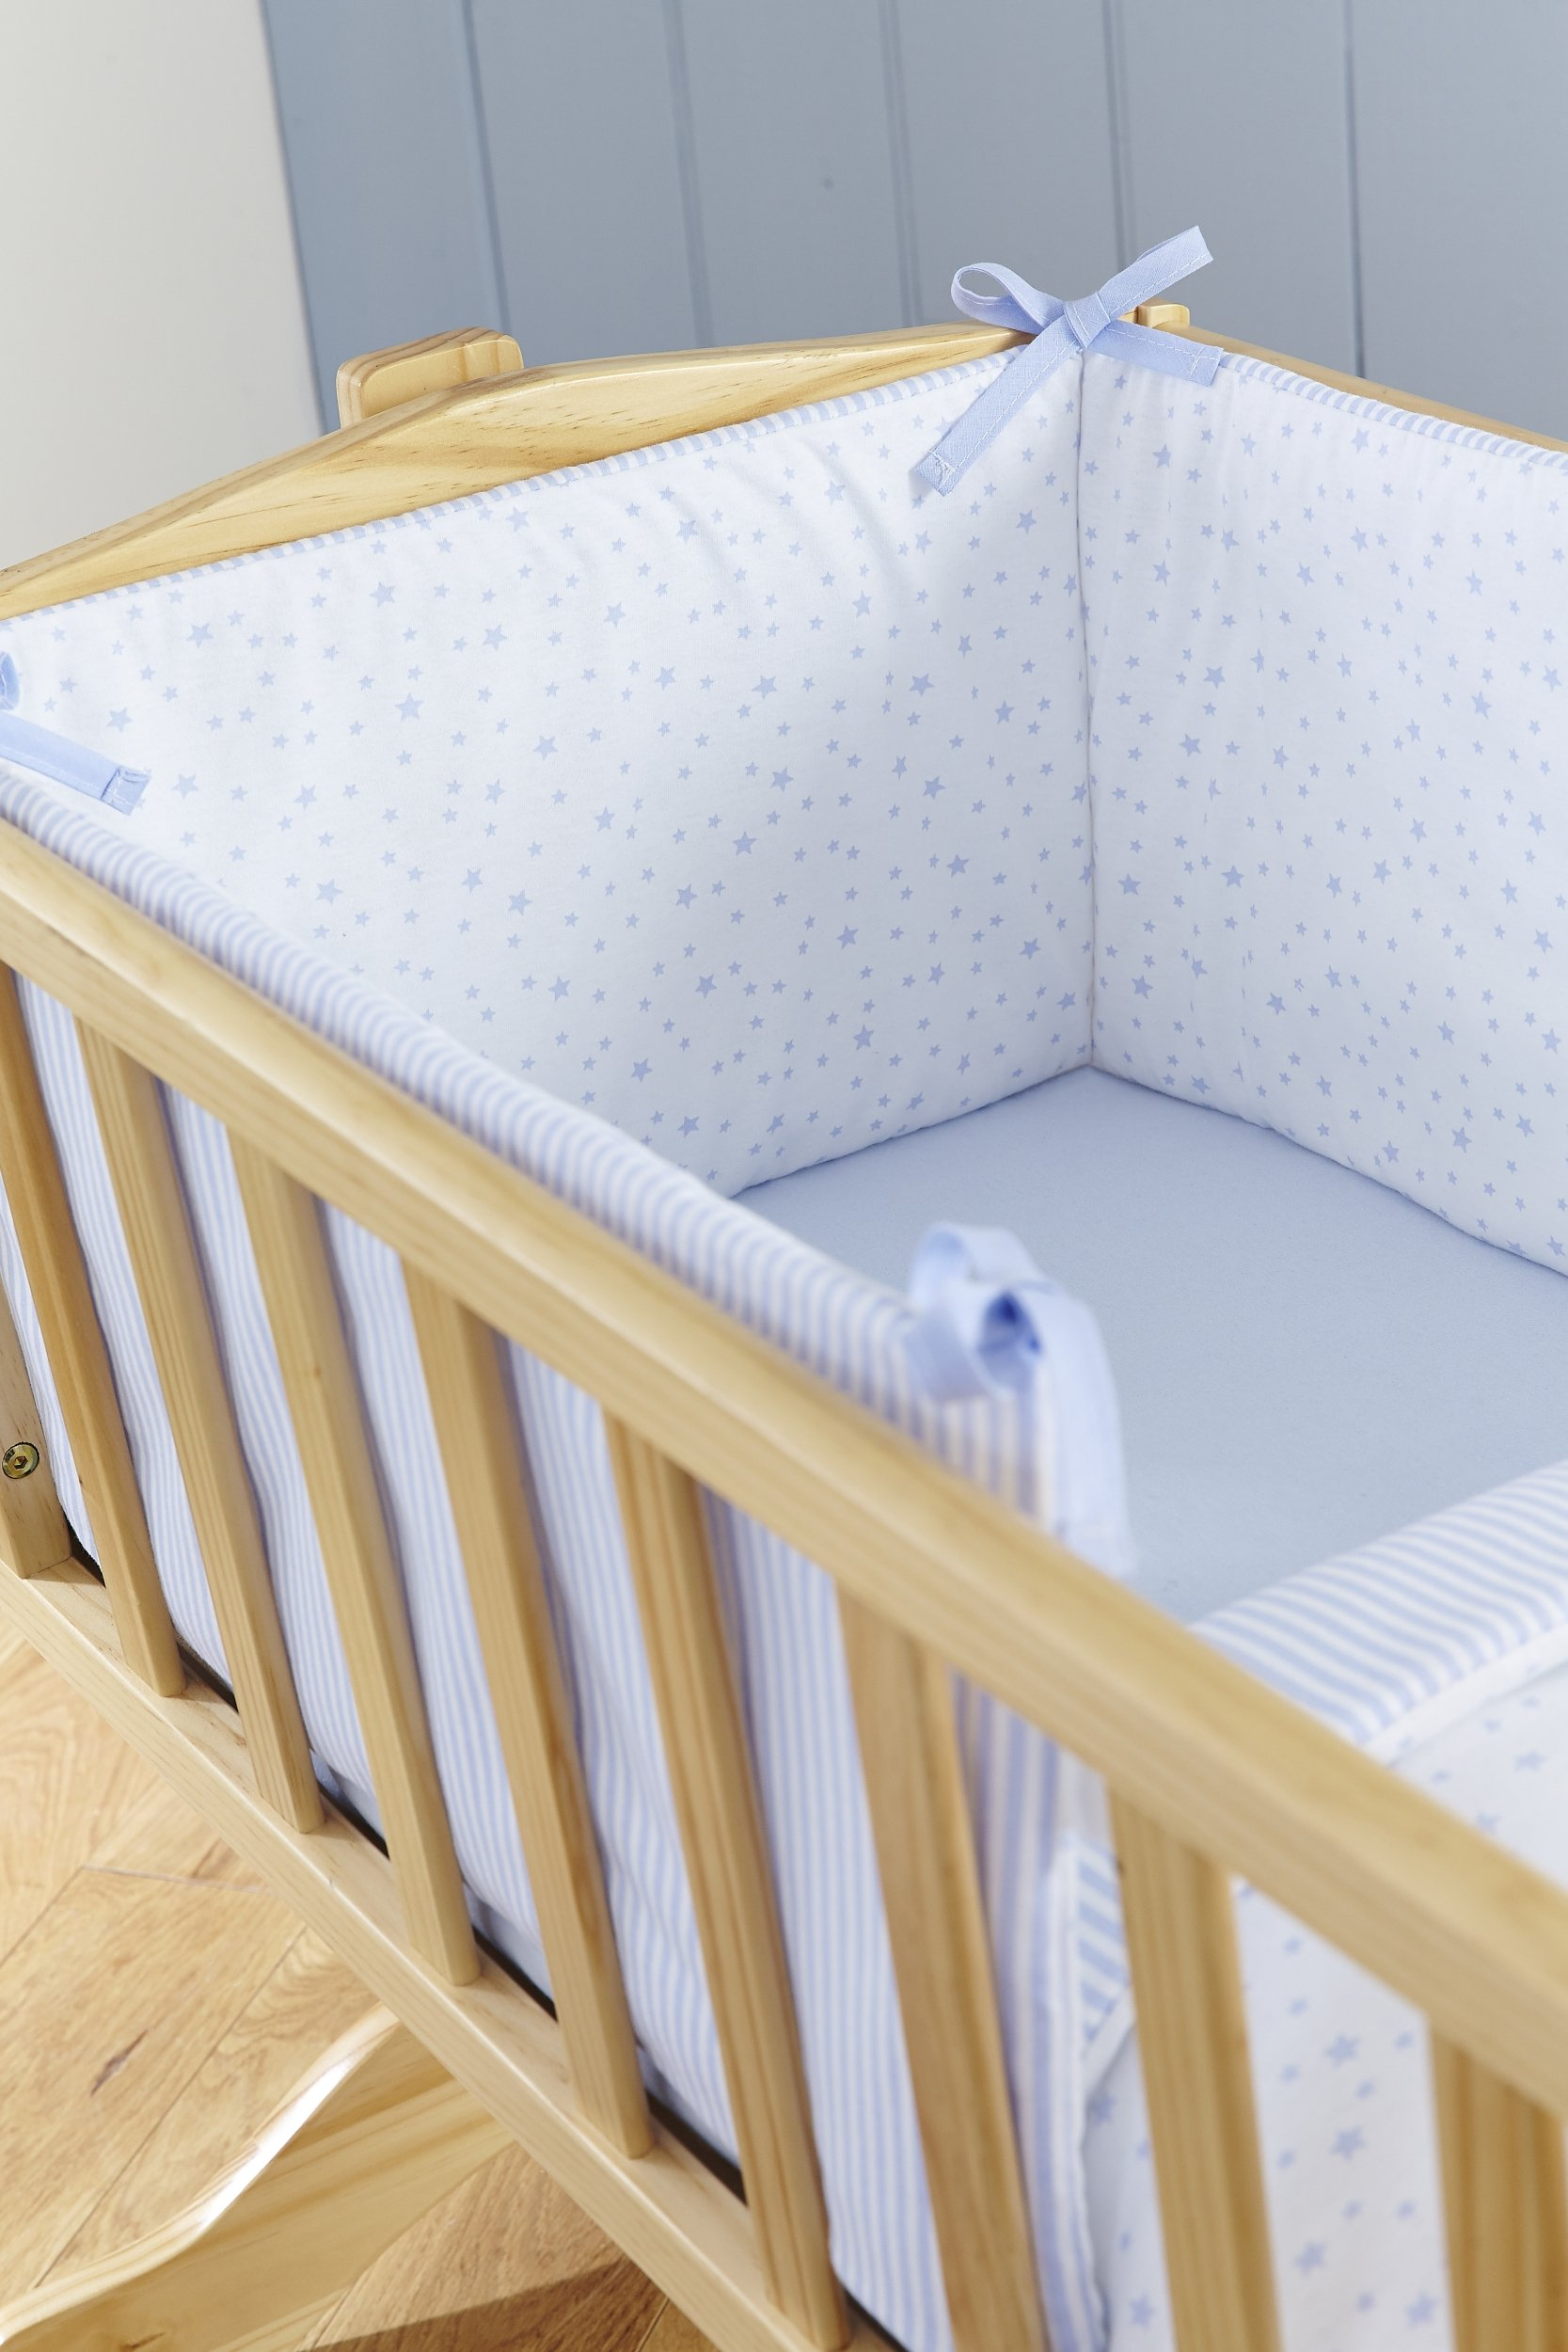 Clair de Lune Crib Set (Blue, Stars and Stripes, 2-Piece) Clair de Lune Featuring a subtle Stars and Stripes print this beautiful bedding set creates a relaxing sleeping area for your precious little one. Made from super soft 100% cotton. Comes complete with Stars and Stripes reversible padded bumper, and 2.5 tog coverlet. 5